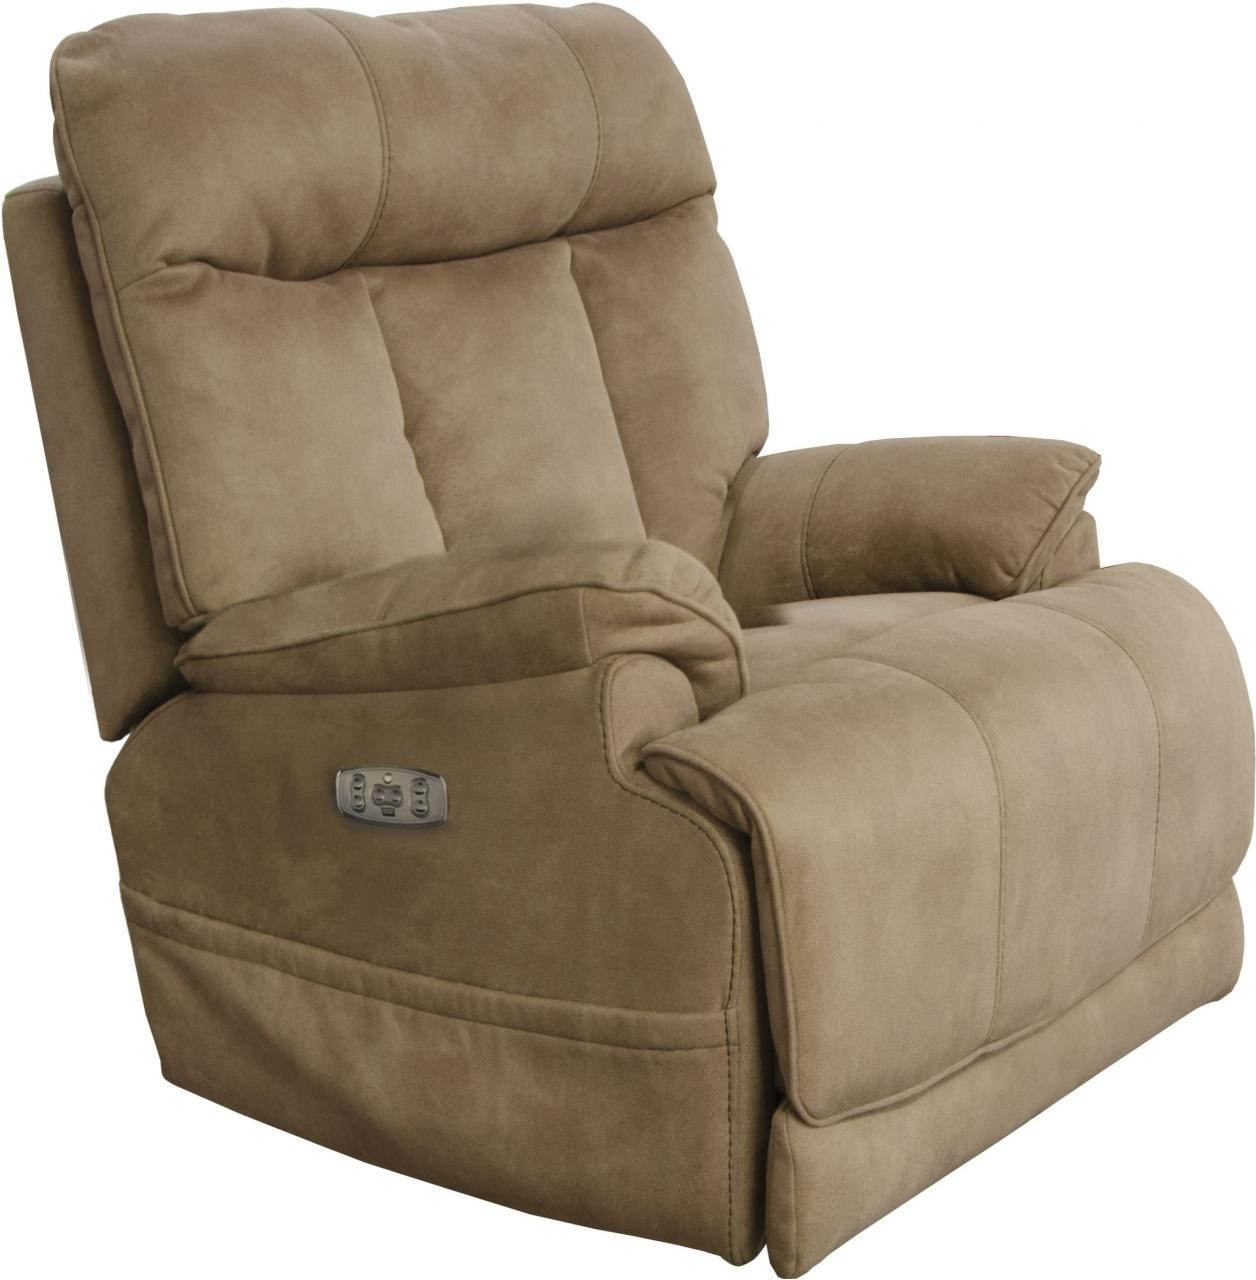 Amos Side Chairs Inside Fashionable Recliners Appliances, Refrigerators, Washers And Dryers, Electronics (View 16 of 20)